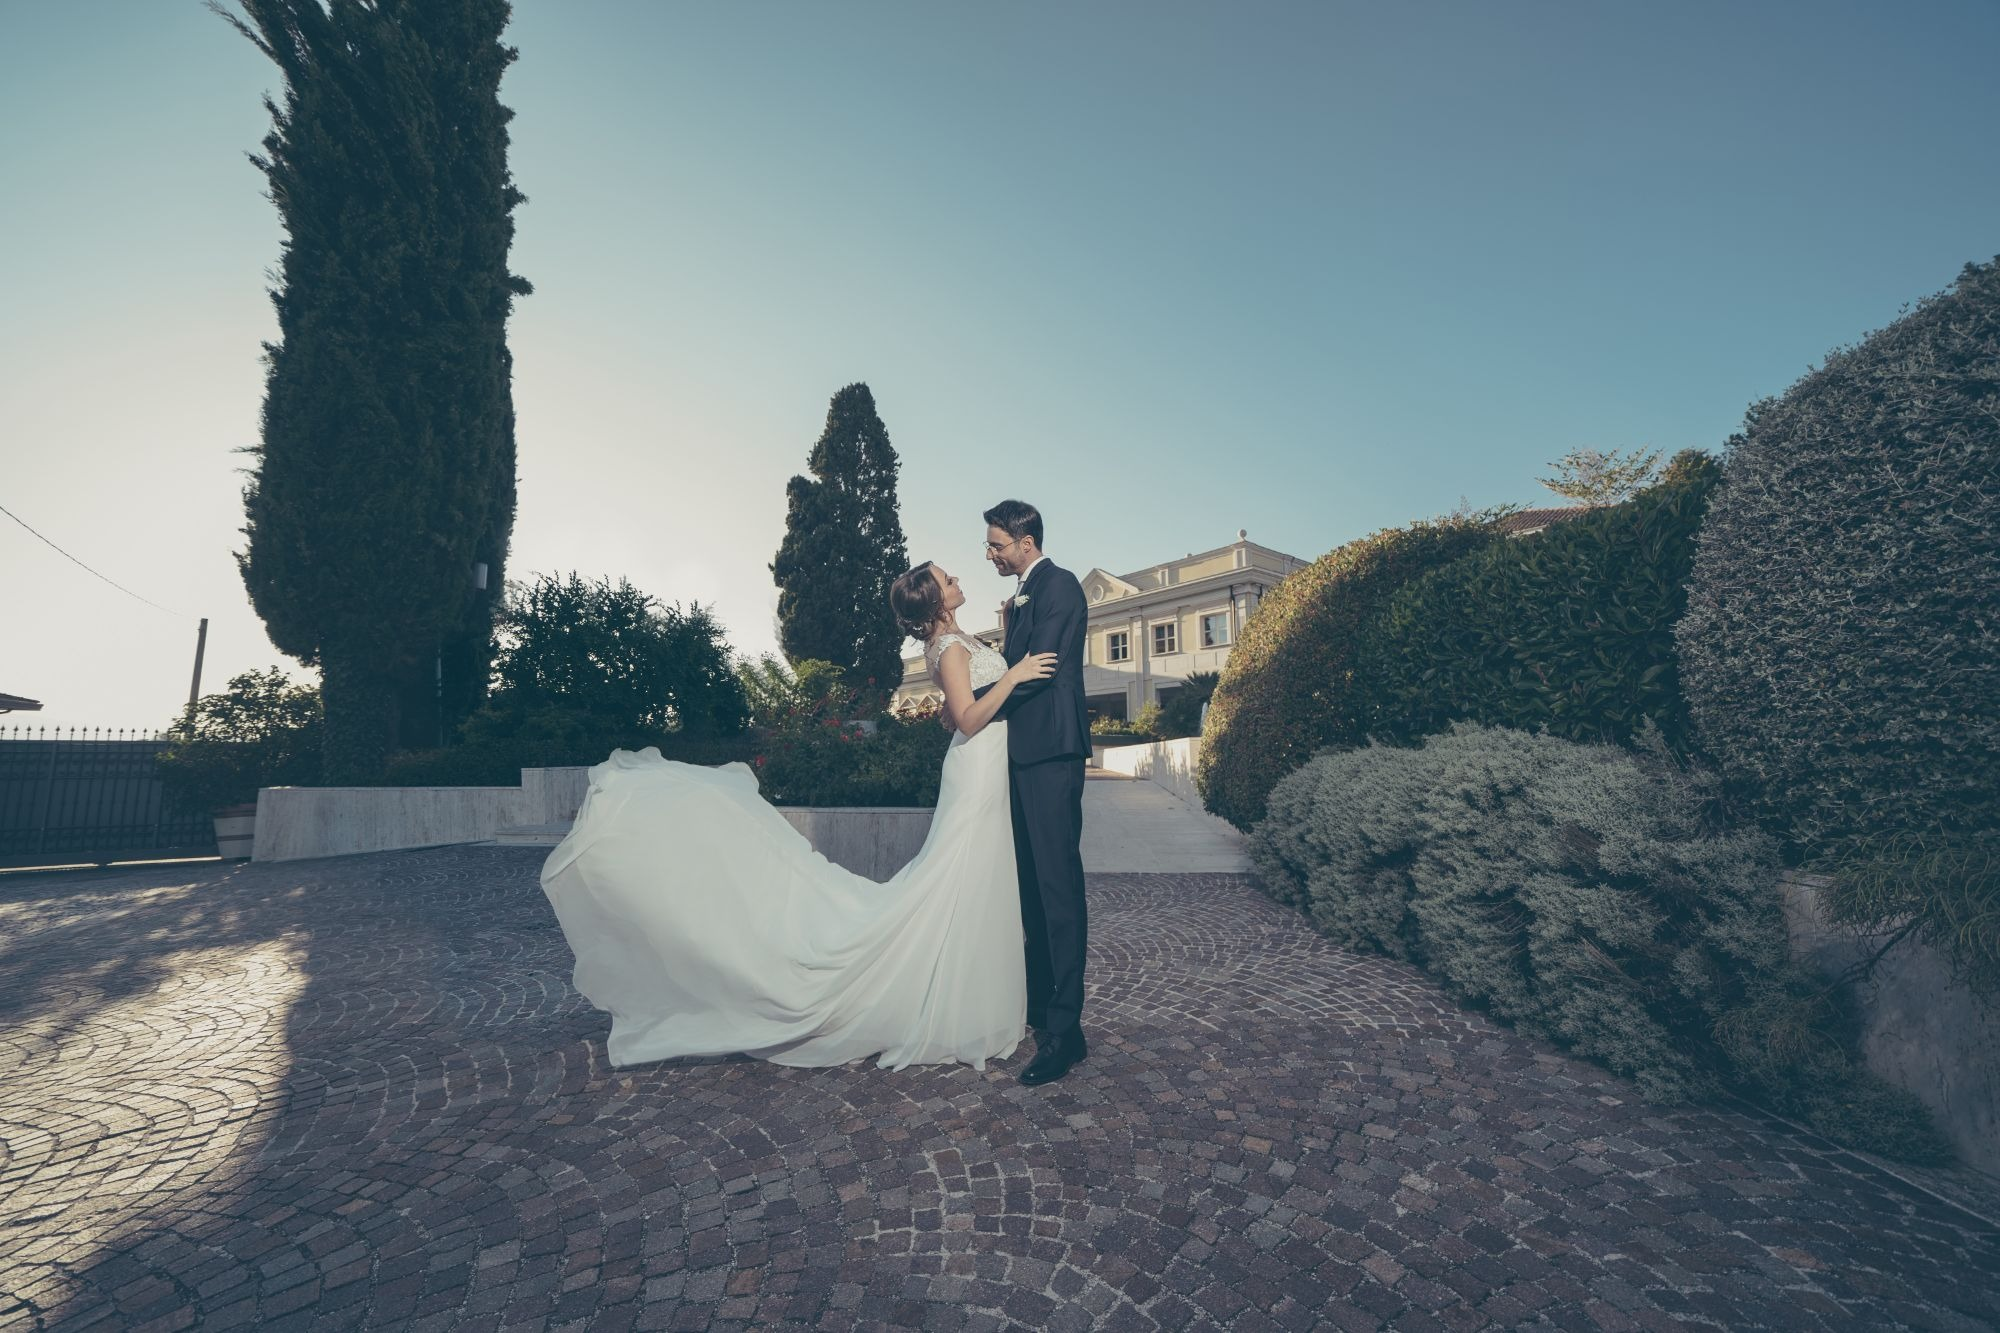 WEDDING IN VILLA TIBERIADE, NAPLES, ITALY